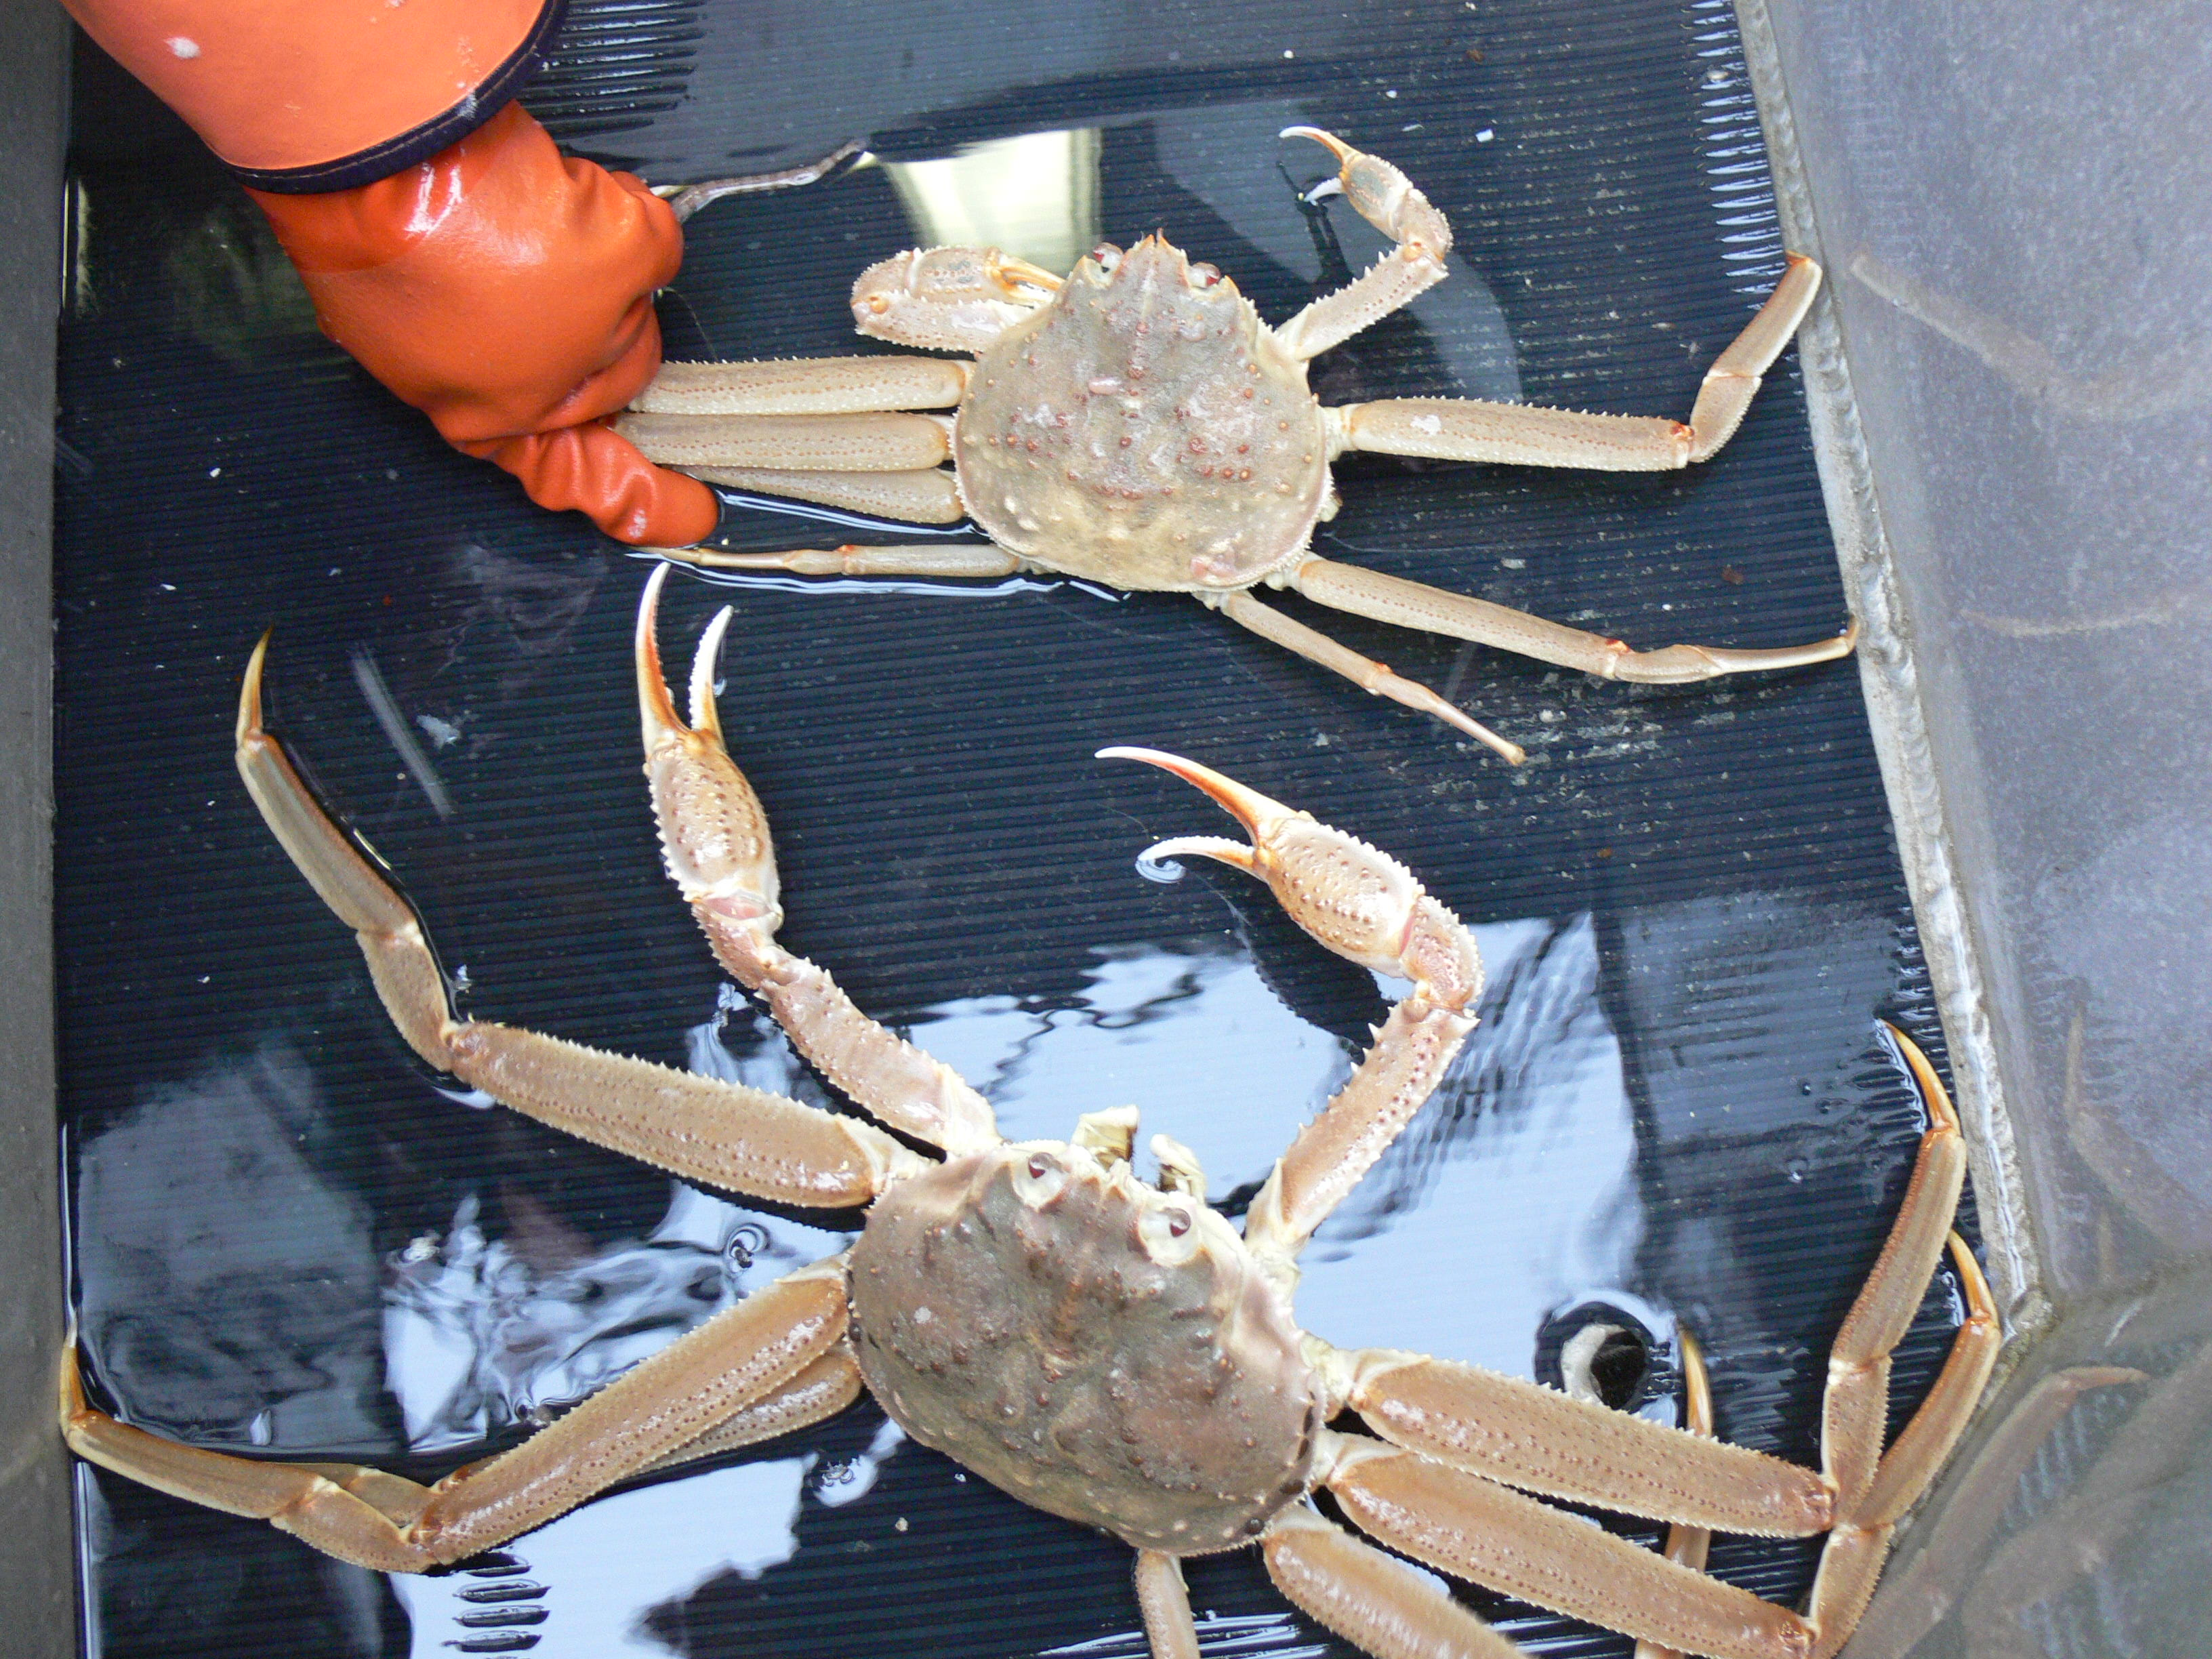 Southeast crab seasons underway after weather delay